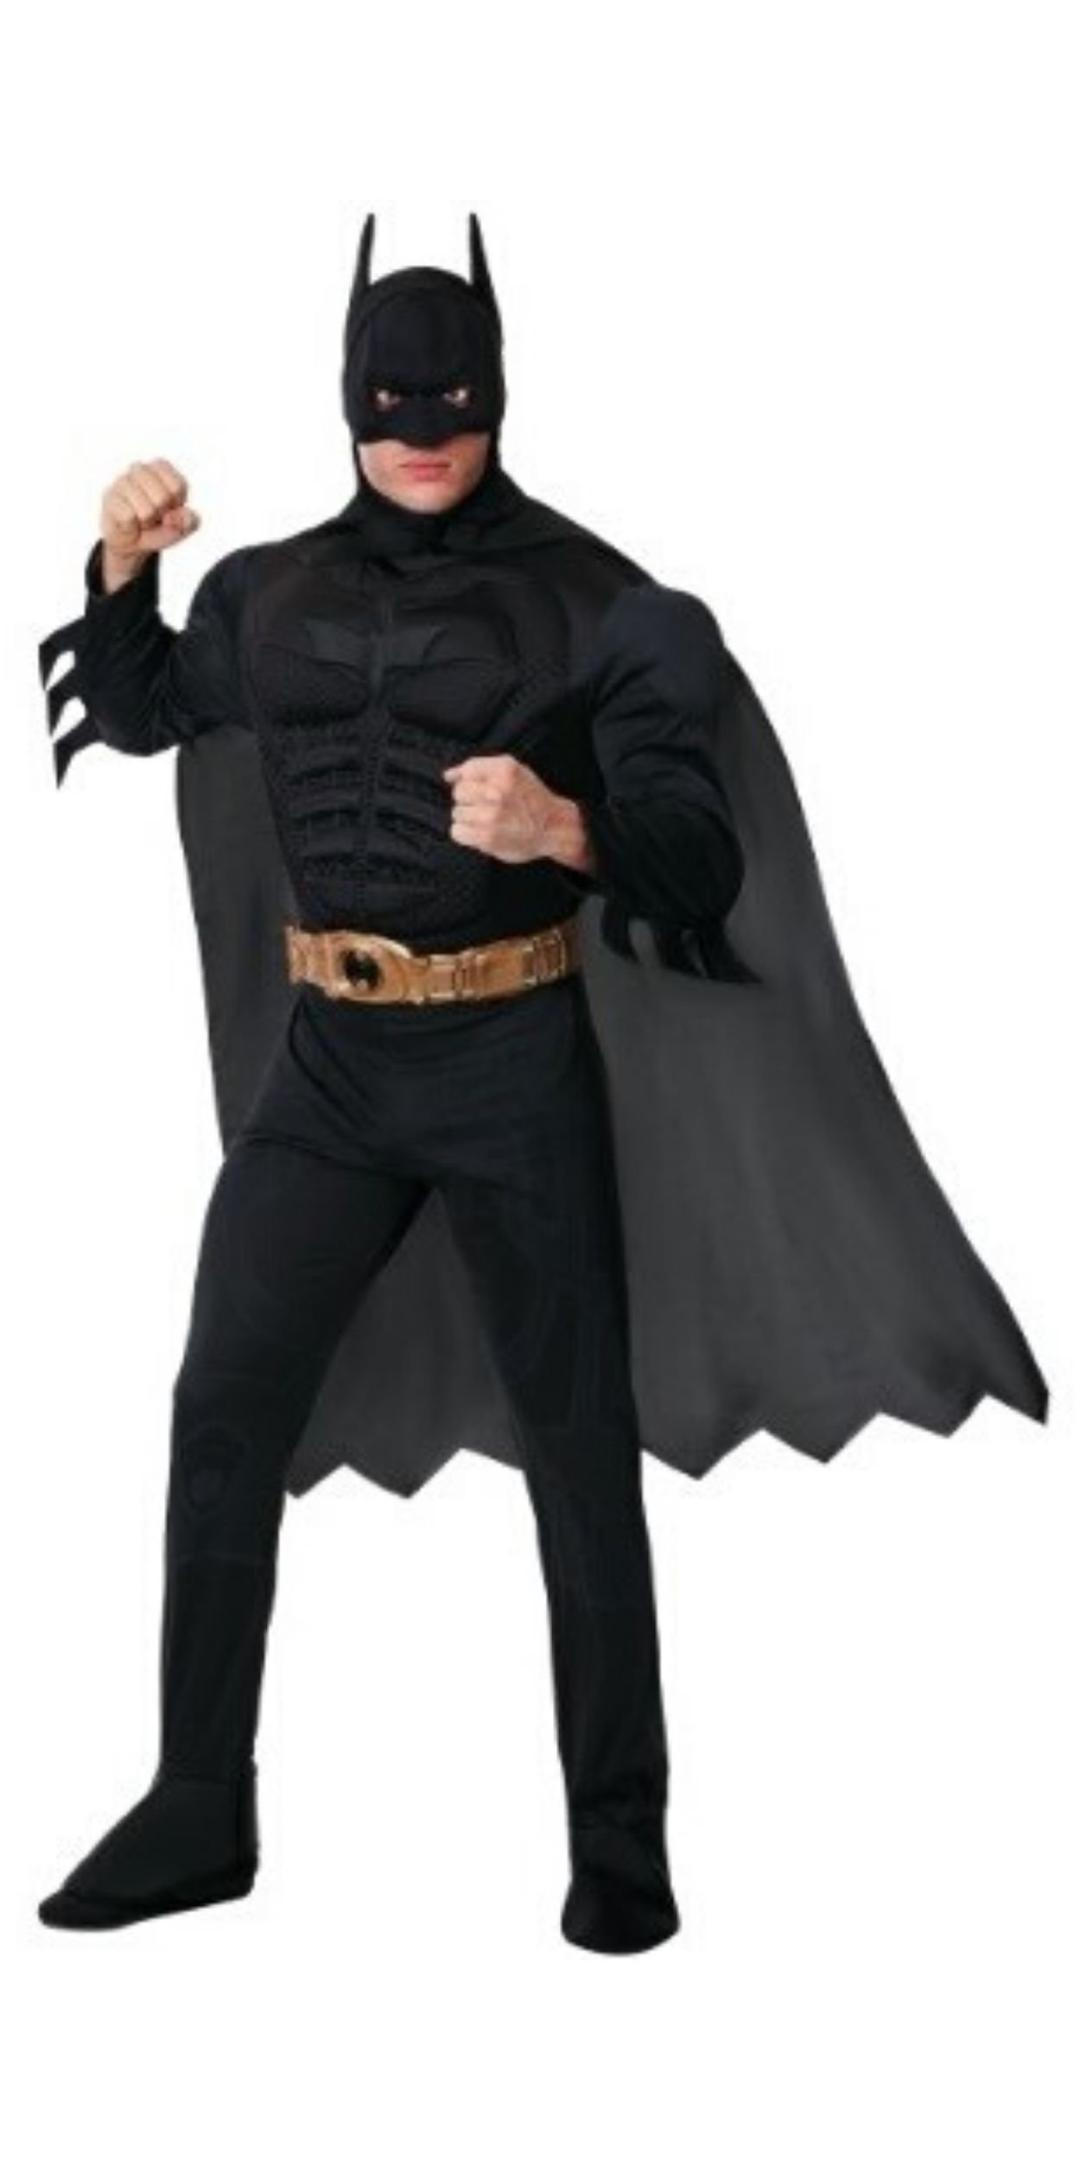 Man in Batman Party Costume